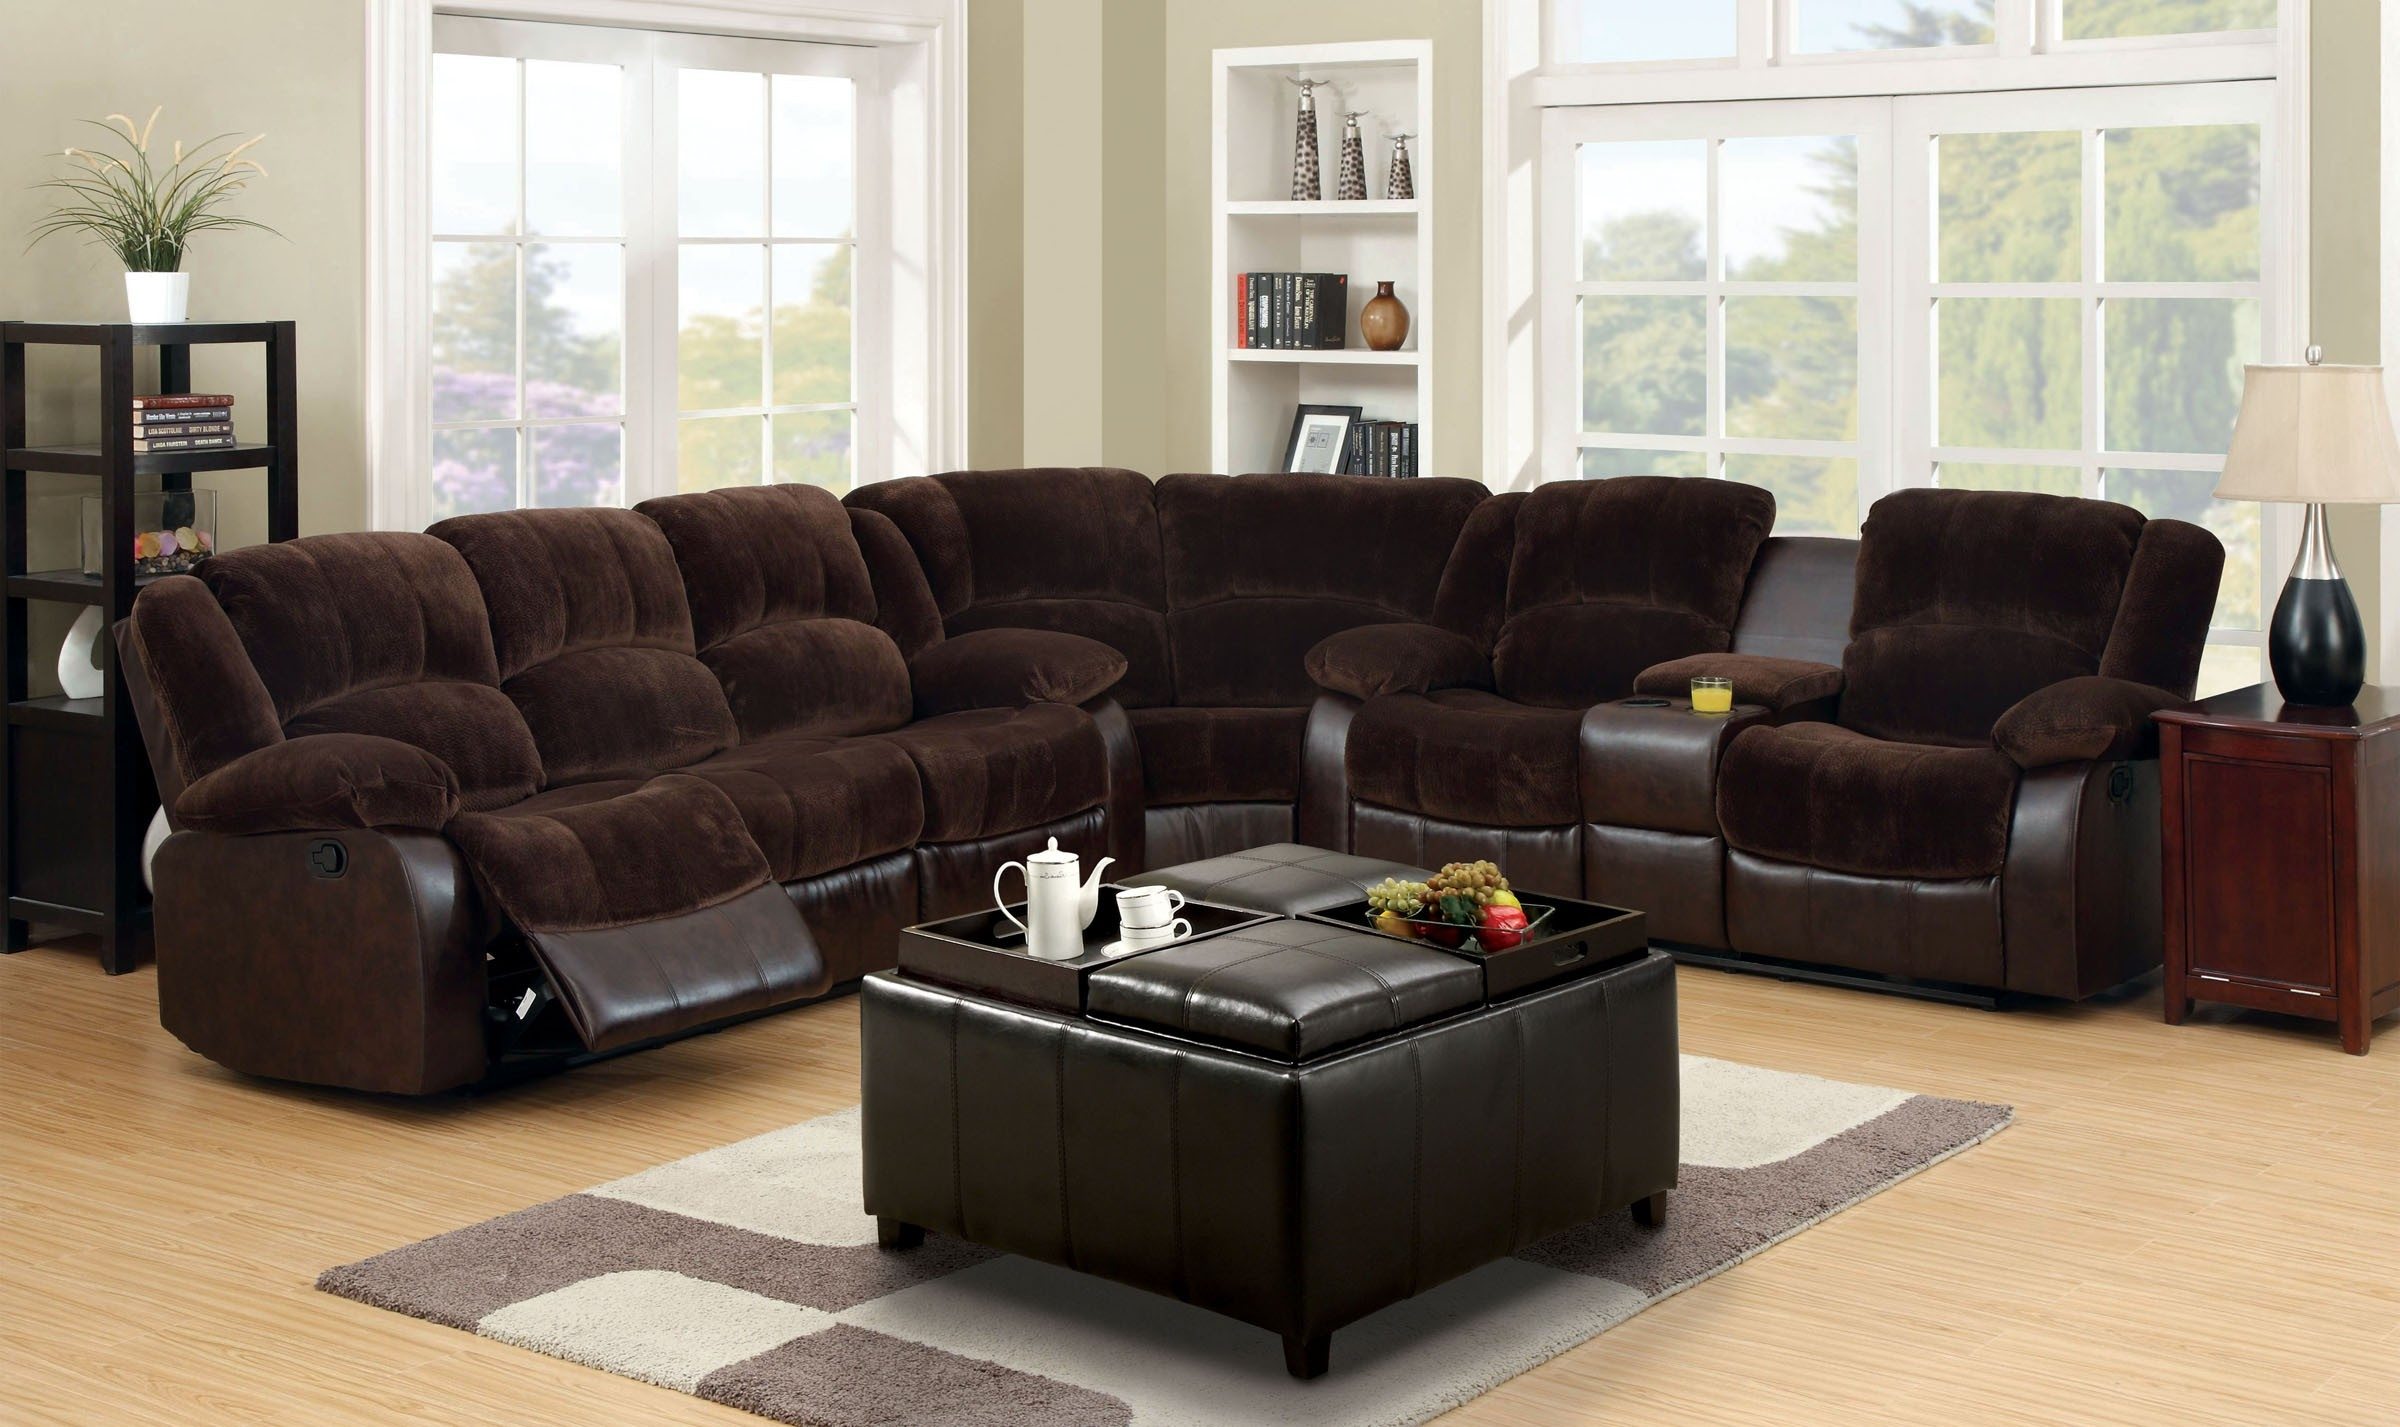 Furniture Of America Cm6556cp Winchester Transitional Brown Inside Champion Sectional Sofa (#5 of 12)